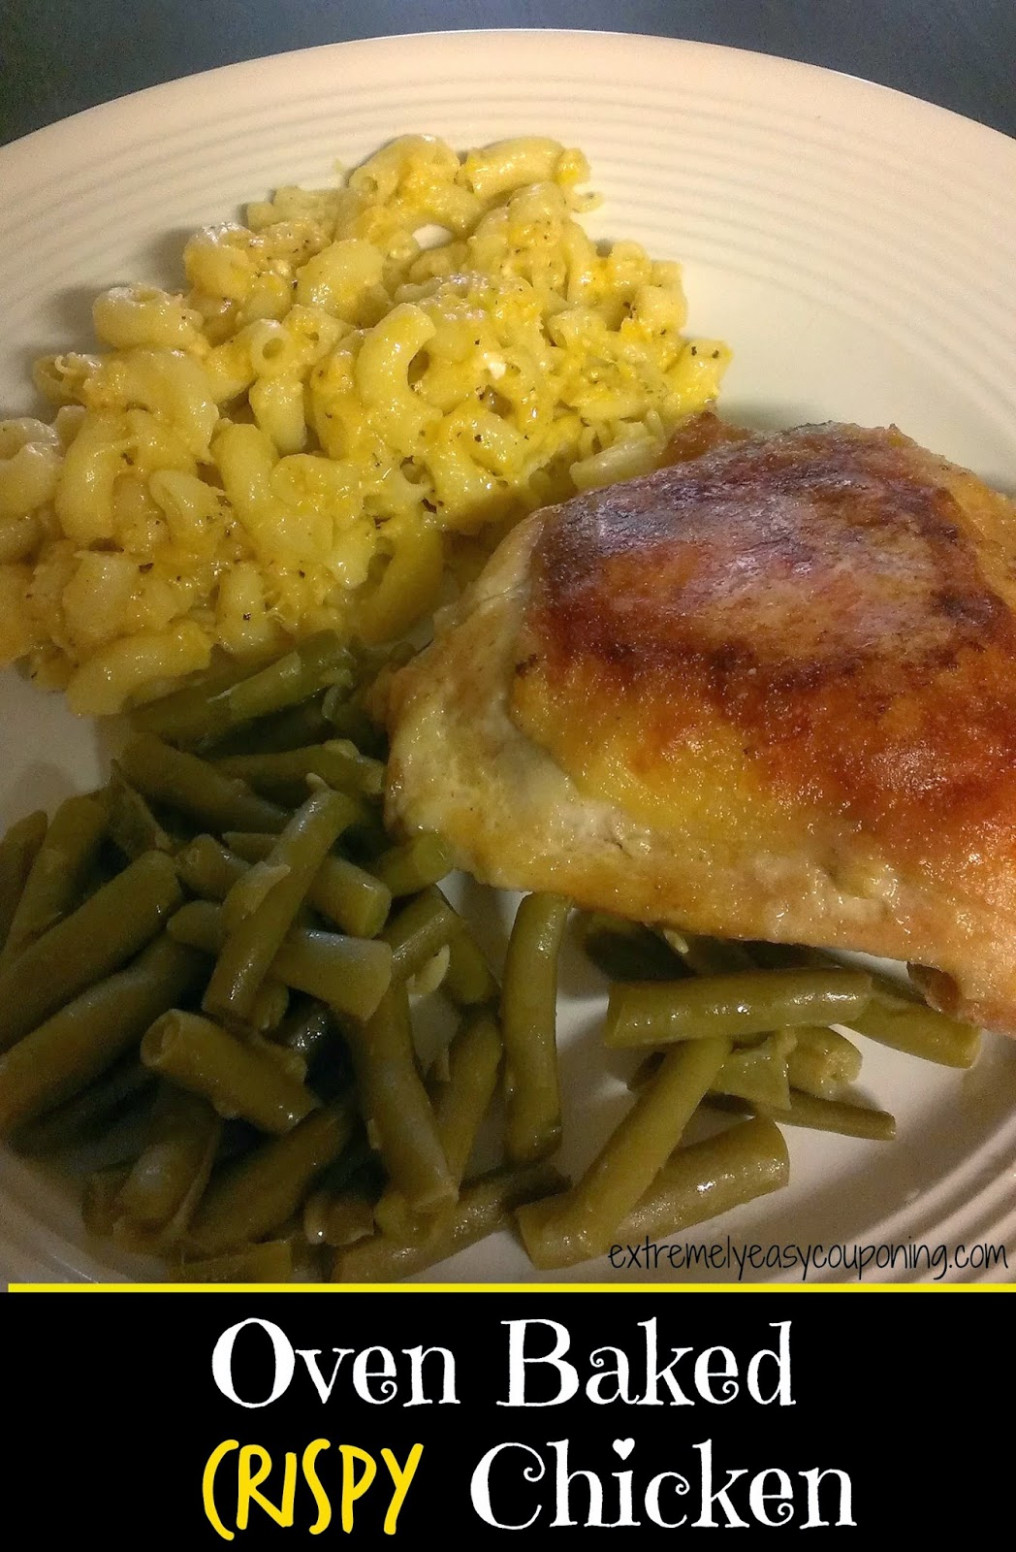 Extremely Easy Couponing: Oven Baked Crispy Chicken Recipe - baked chicken leg quarters recipes